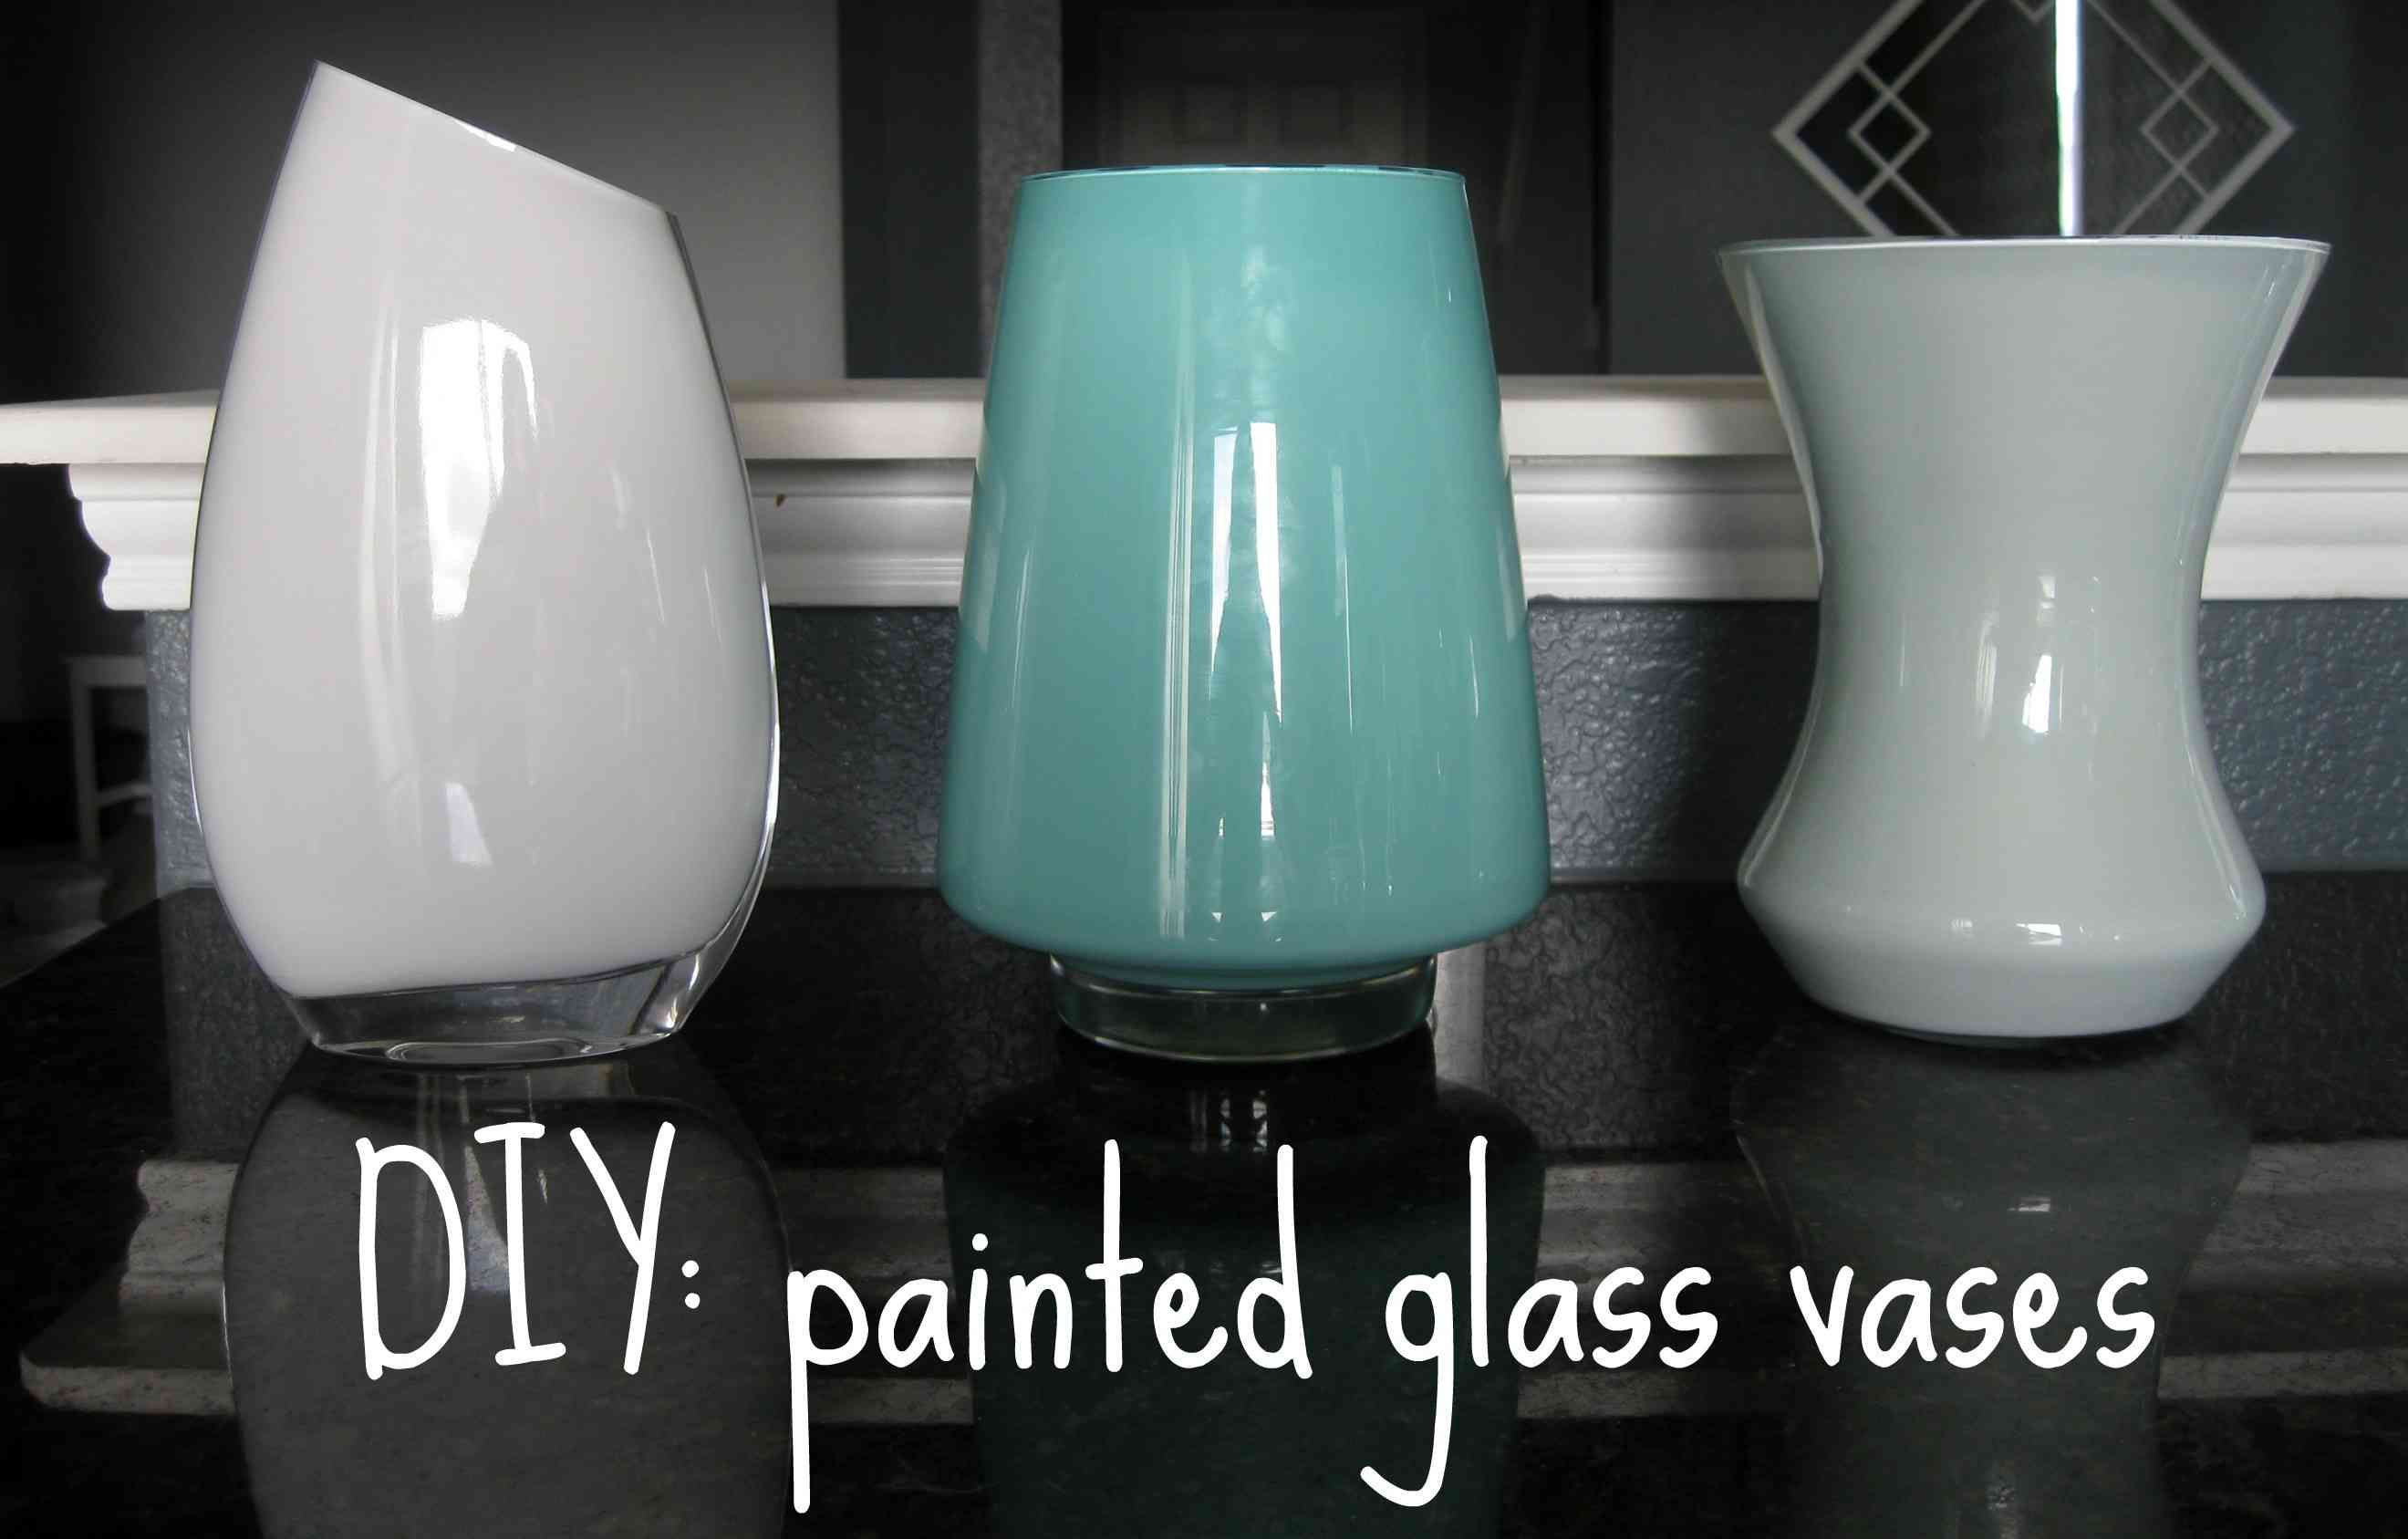 bohemia crystal glass vase of 23 blue crystal vase the weekly world with regard to diy painted glass vasesh vases how to paint vasesi 0d via conejita info